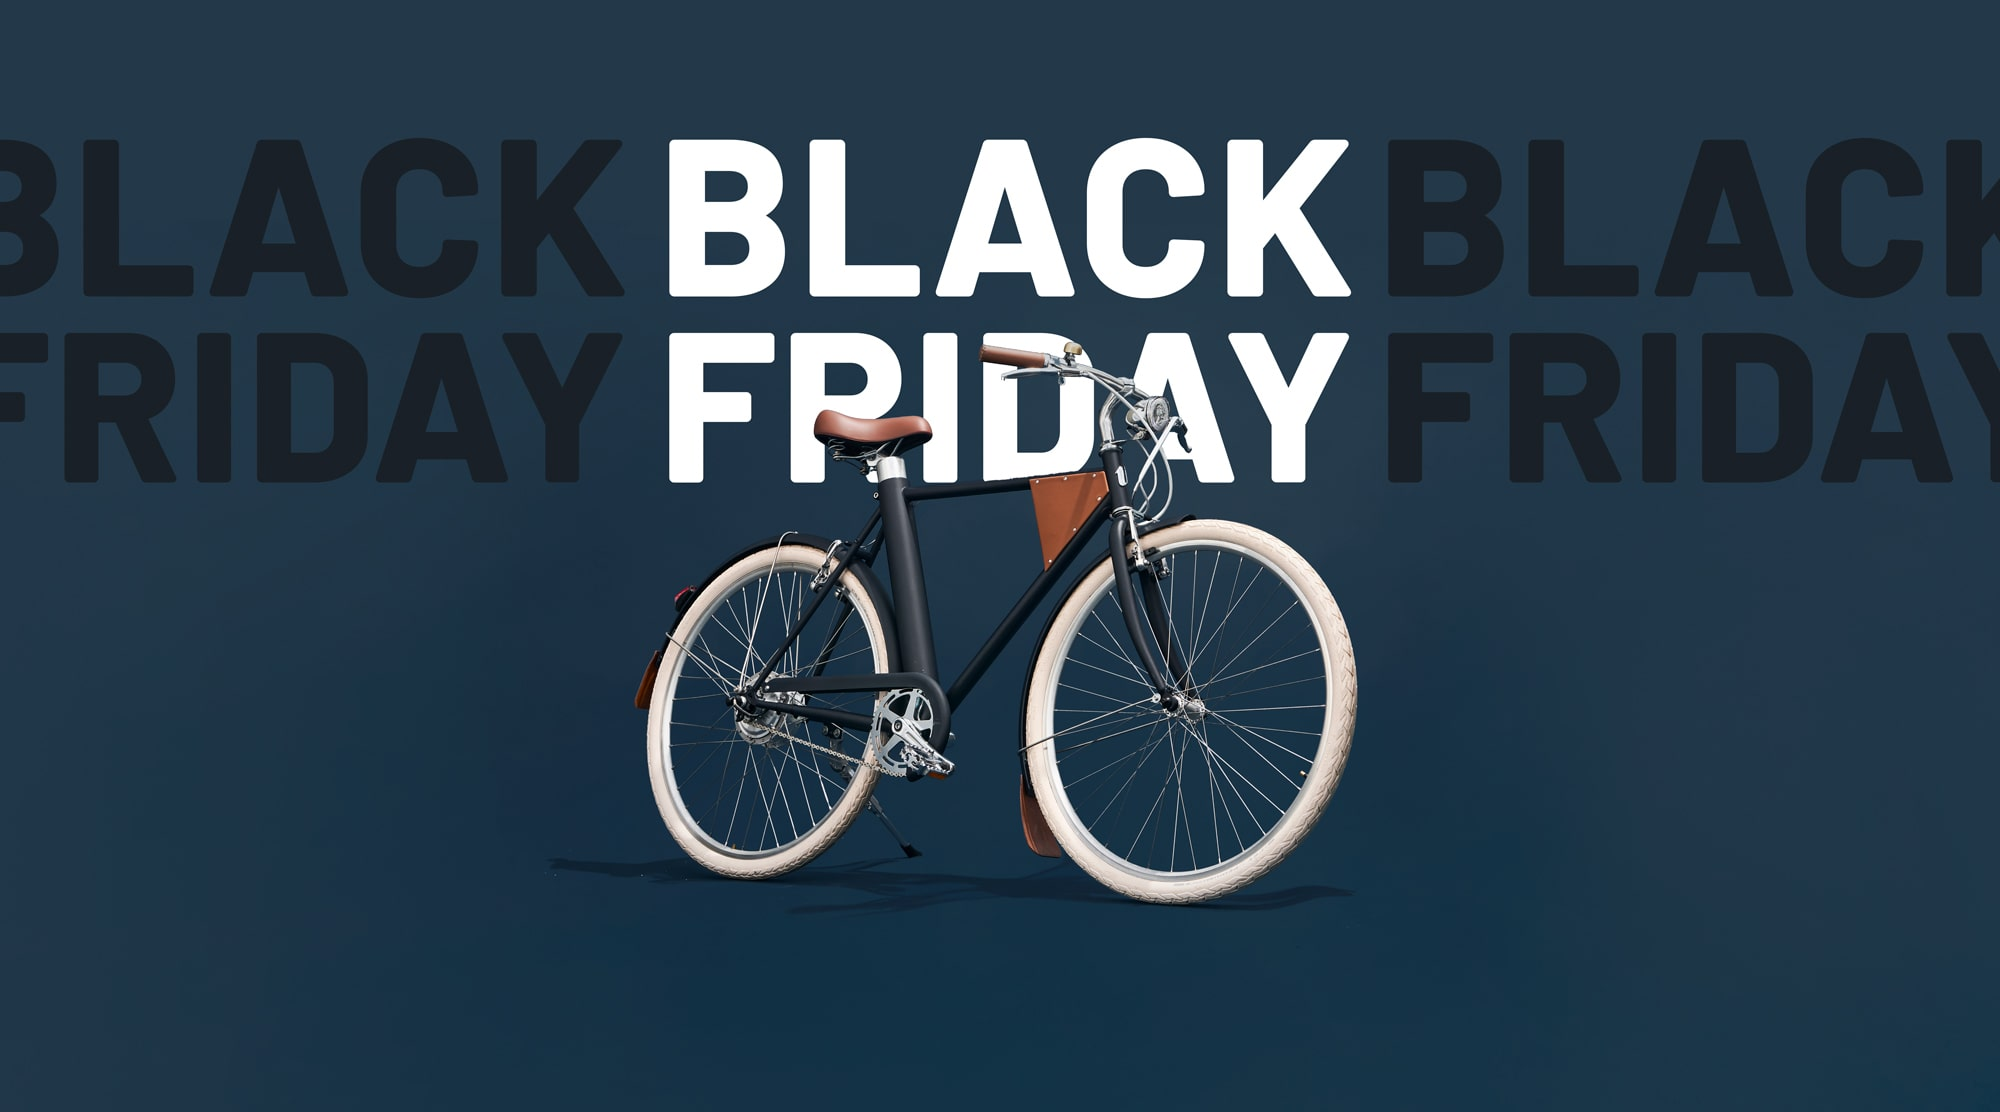 Black Friday 2020 - Vela Bikes